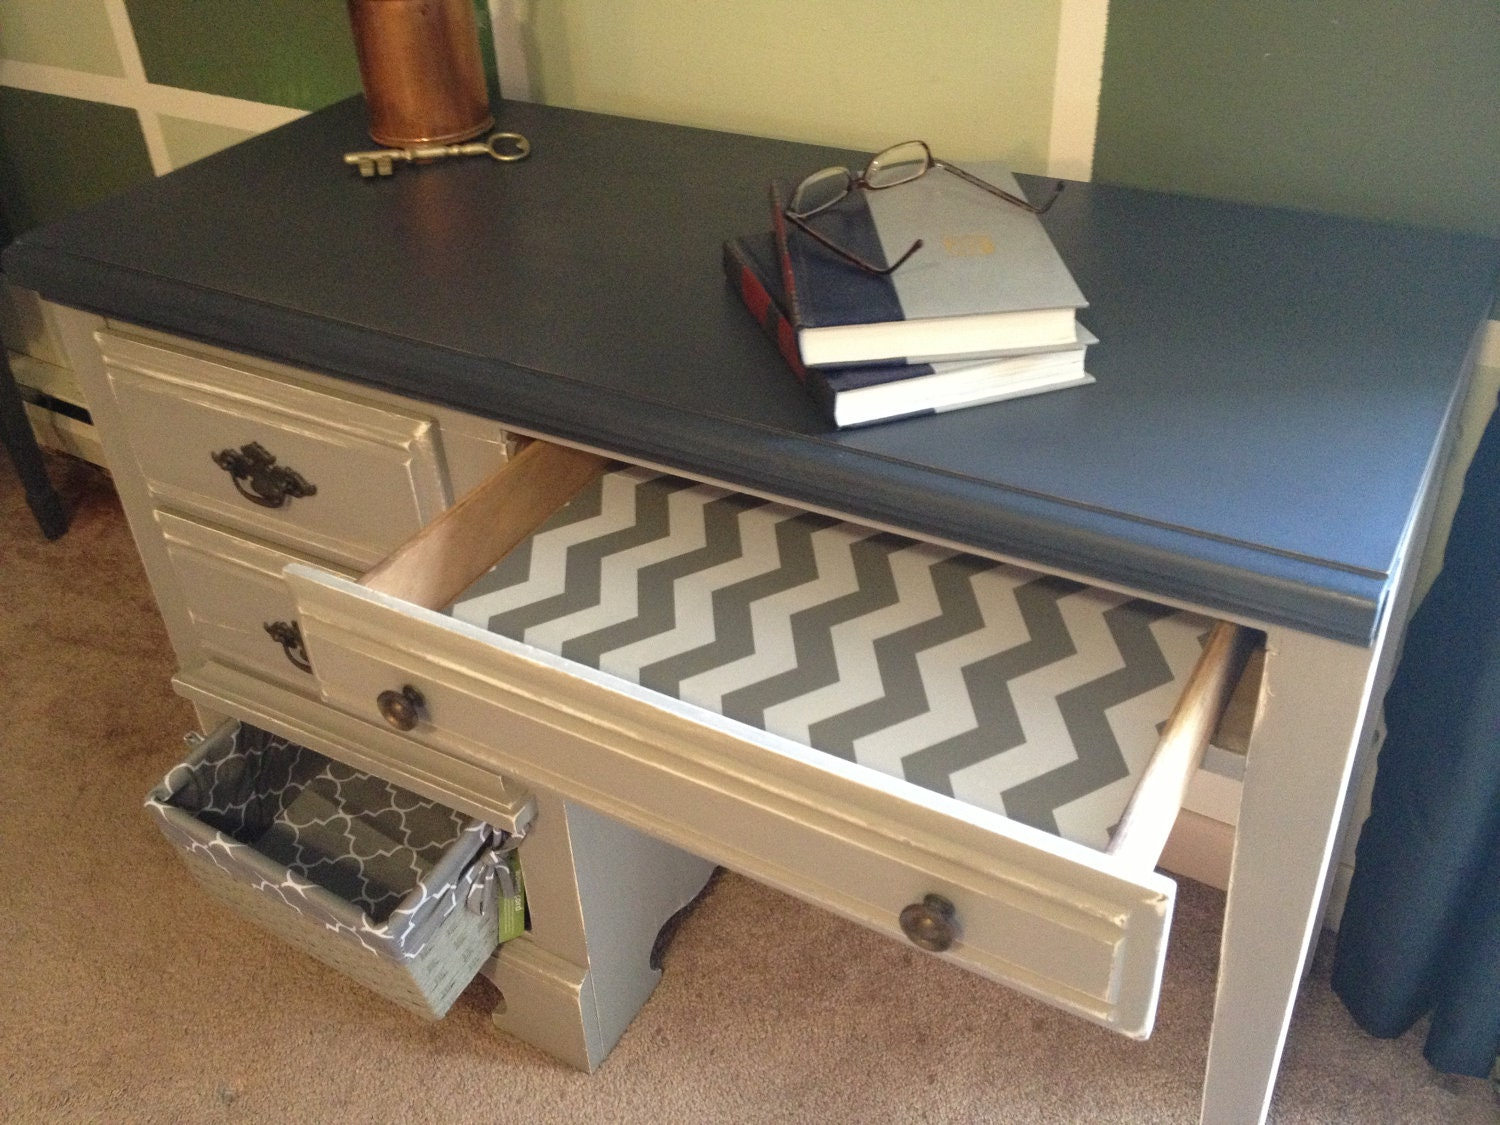 Small Painted Distressed Desk. Modern Desk Lamp. Old Fashioned Desk Chair. Chrome Table Base. Storage Chest With Basket Drawers. Sit Stand Desks. Boys Desk. Black And Gold End Table. Billiard Tables